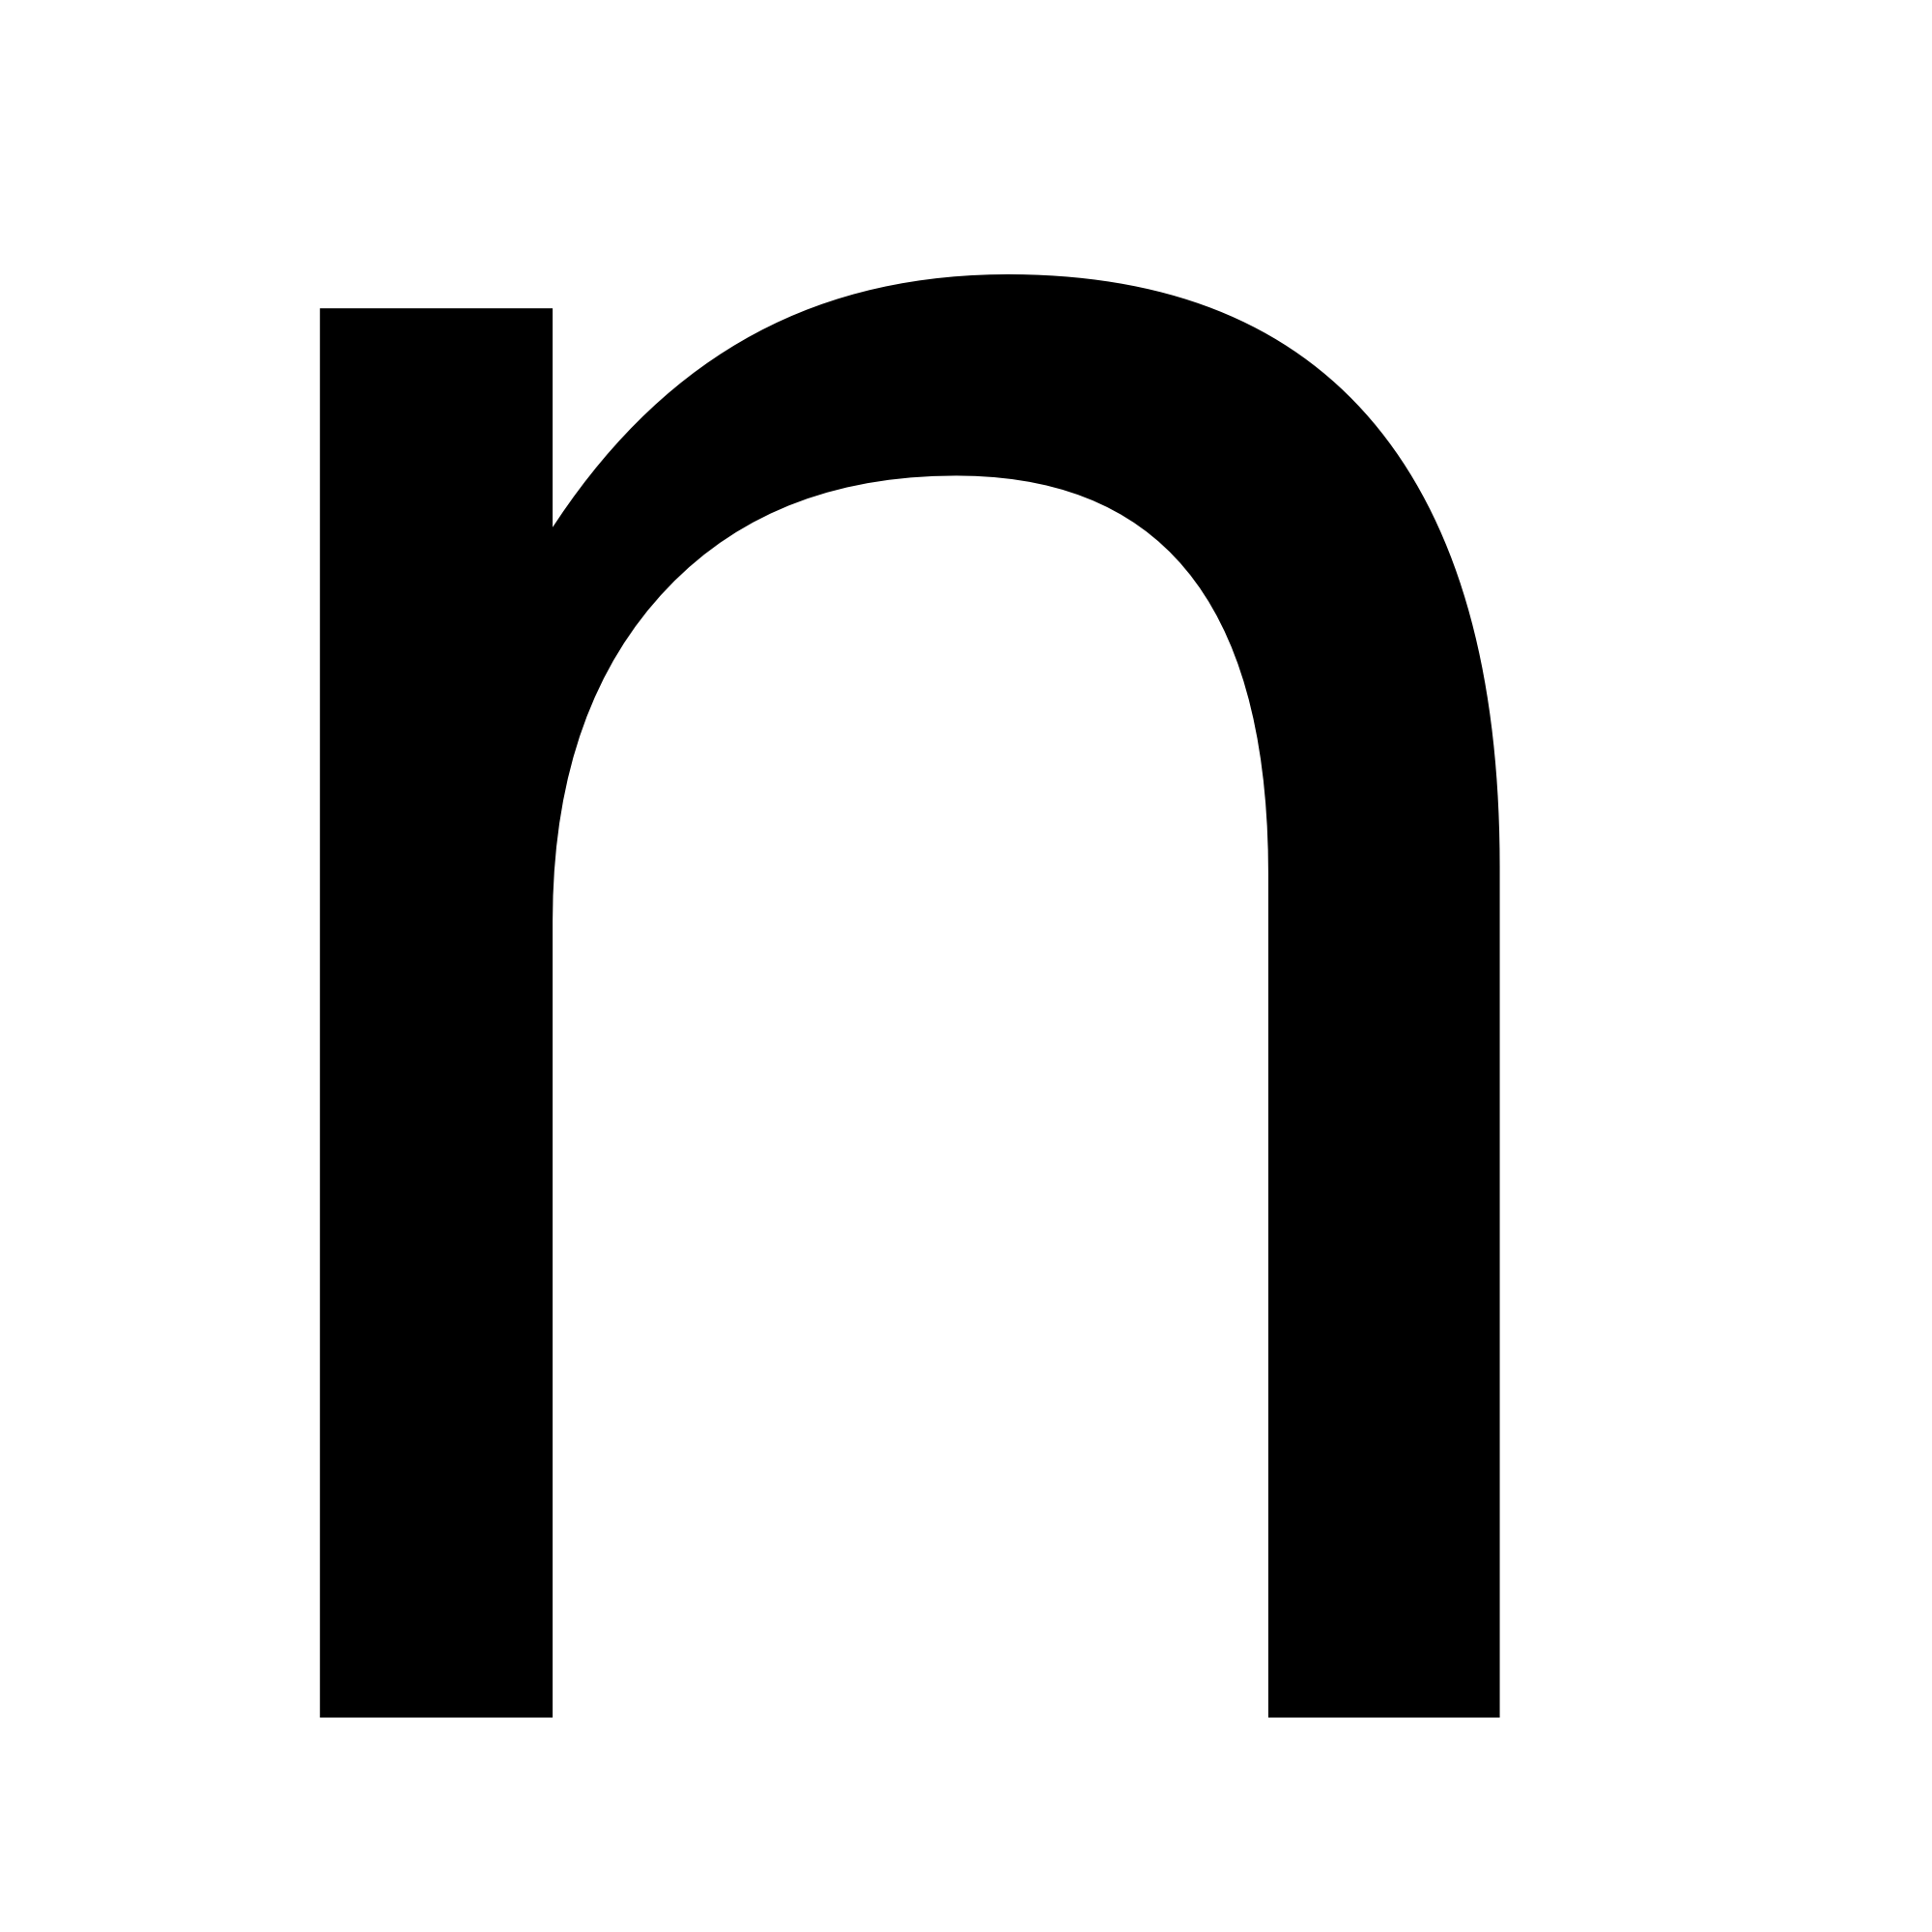 Letter n png. File svg wikimedia commons